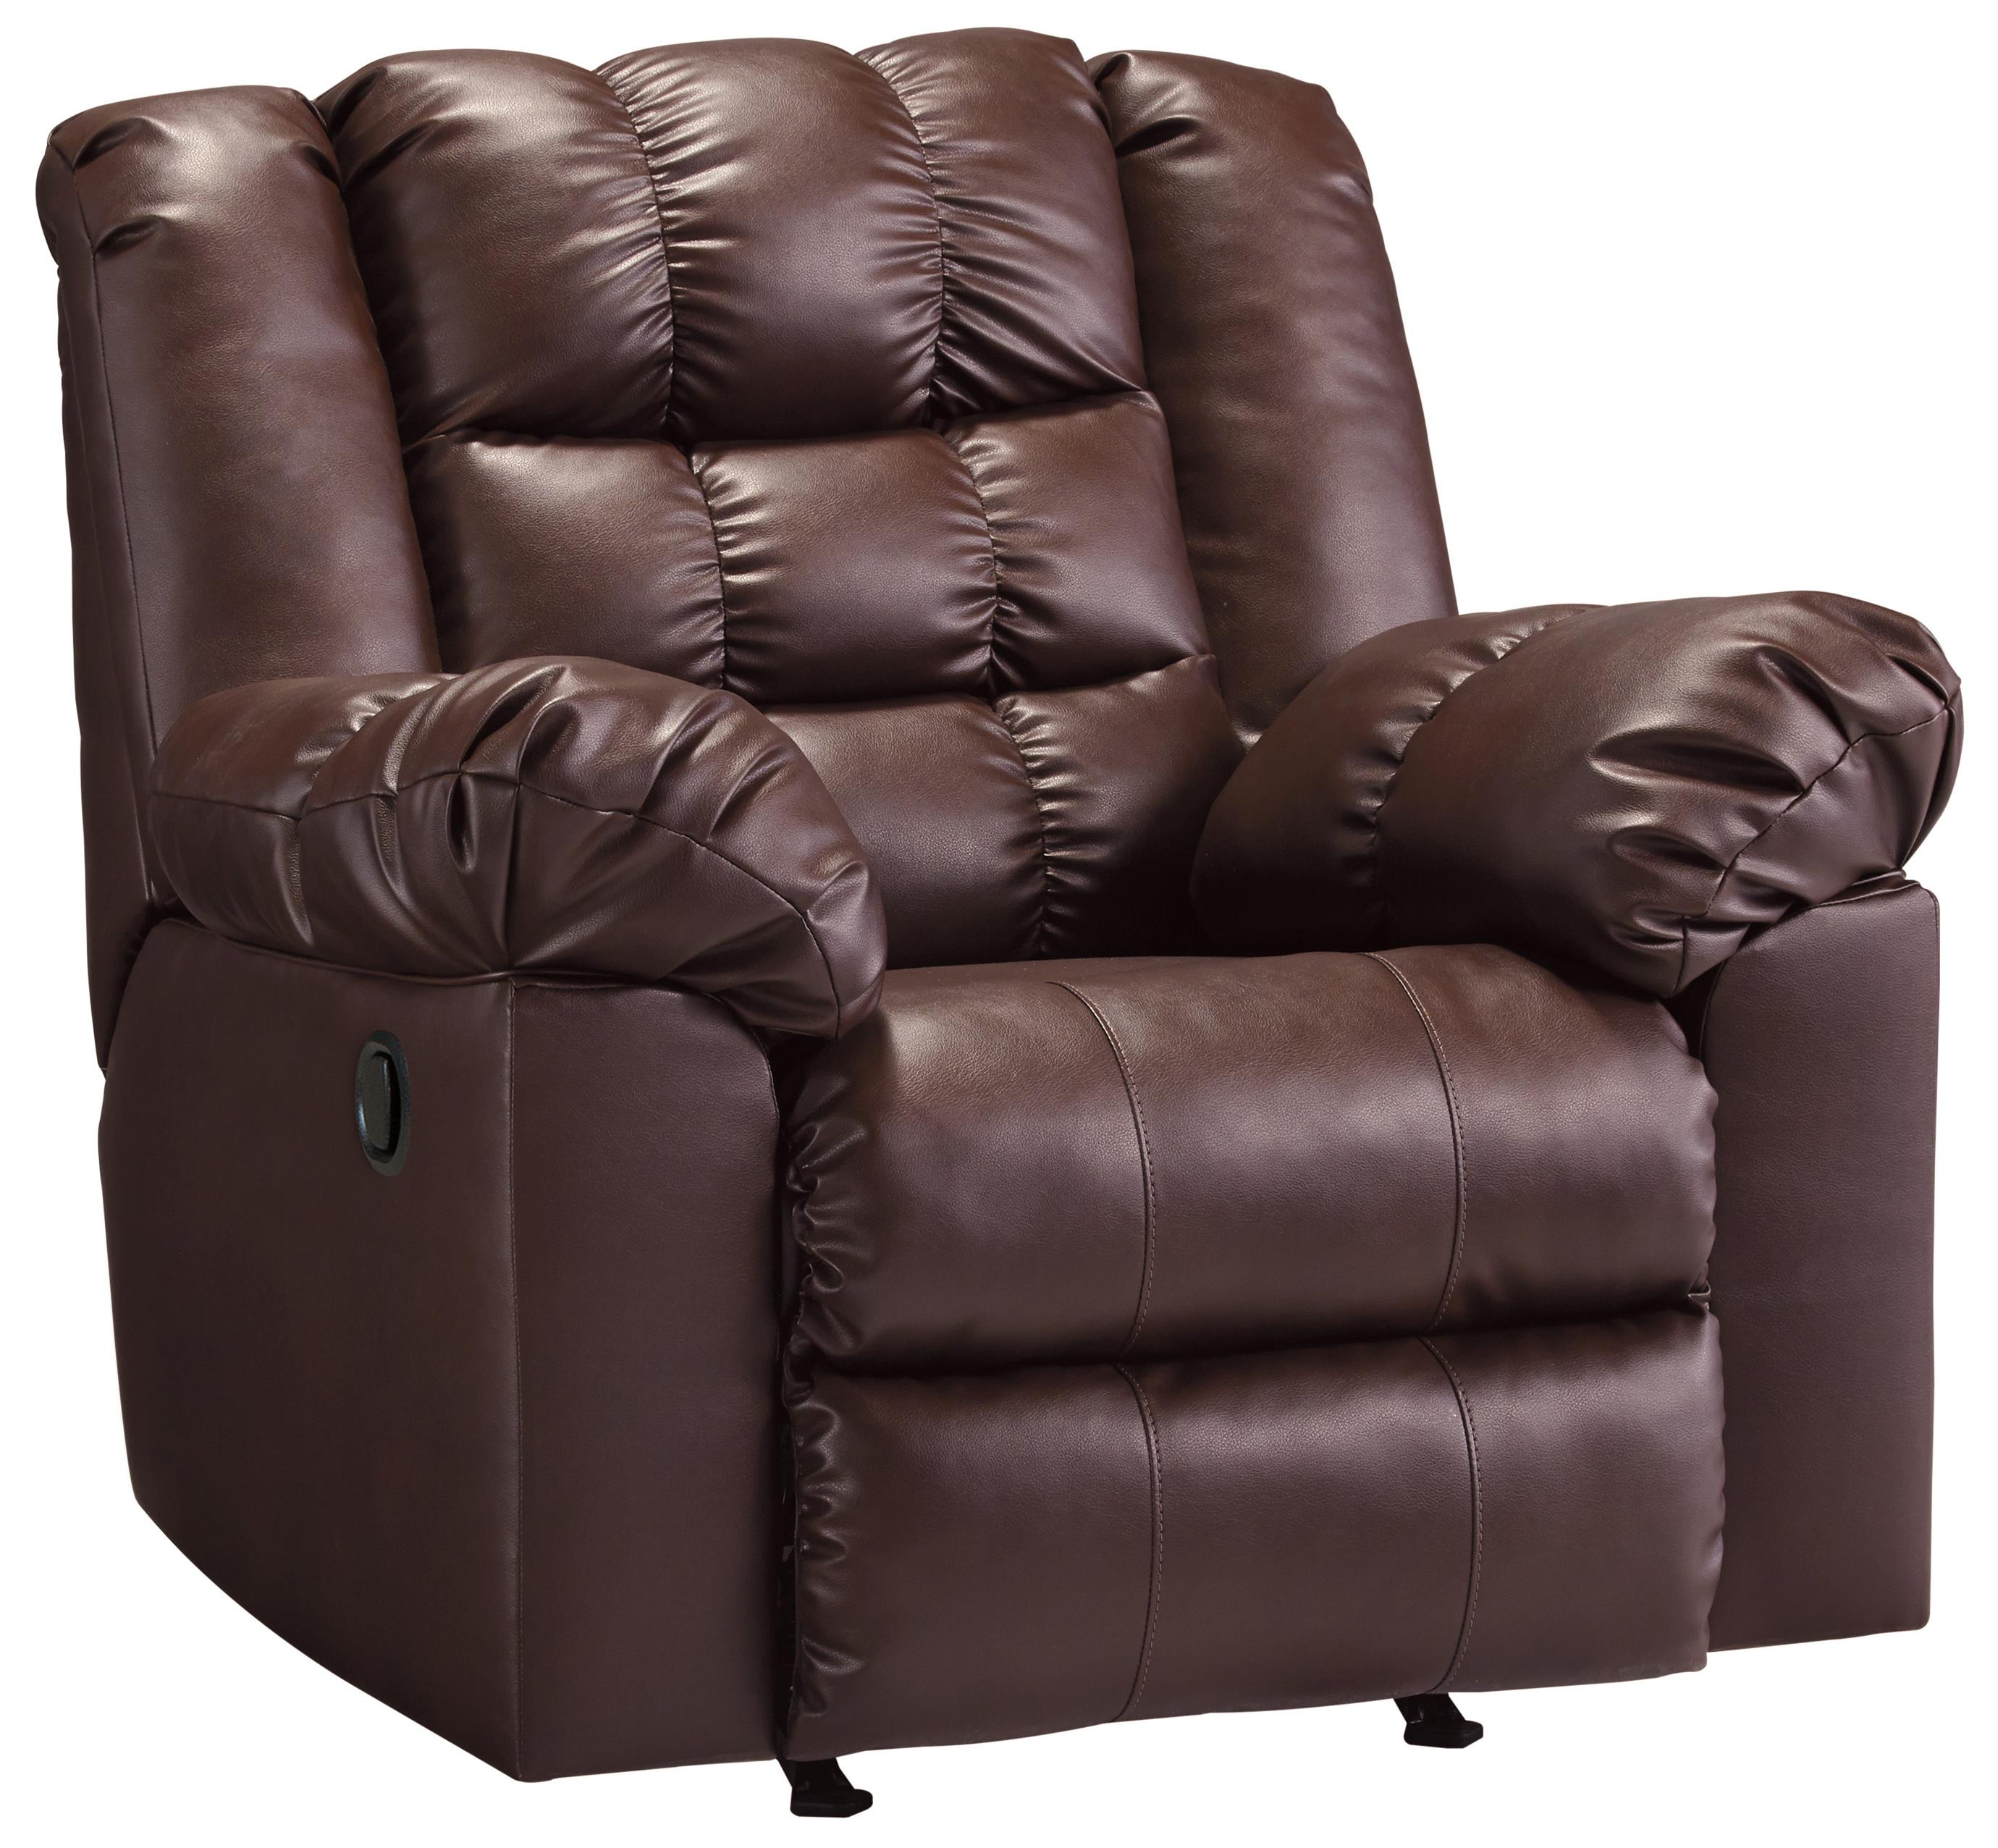 Signature Design by Ashley Brolayne DuraBlend® Rocker Recliner - Item Number: 8320225